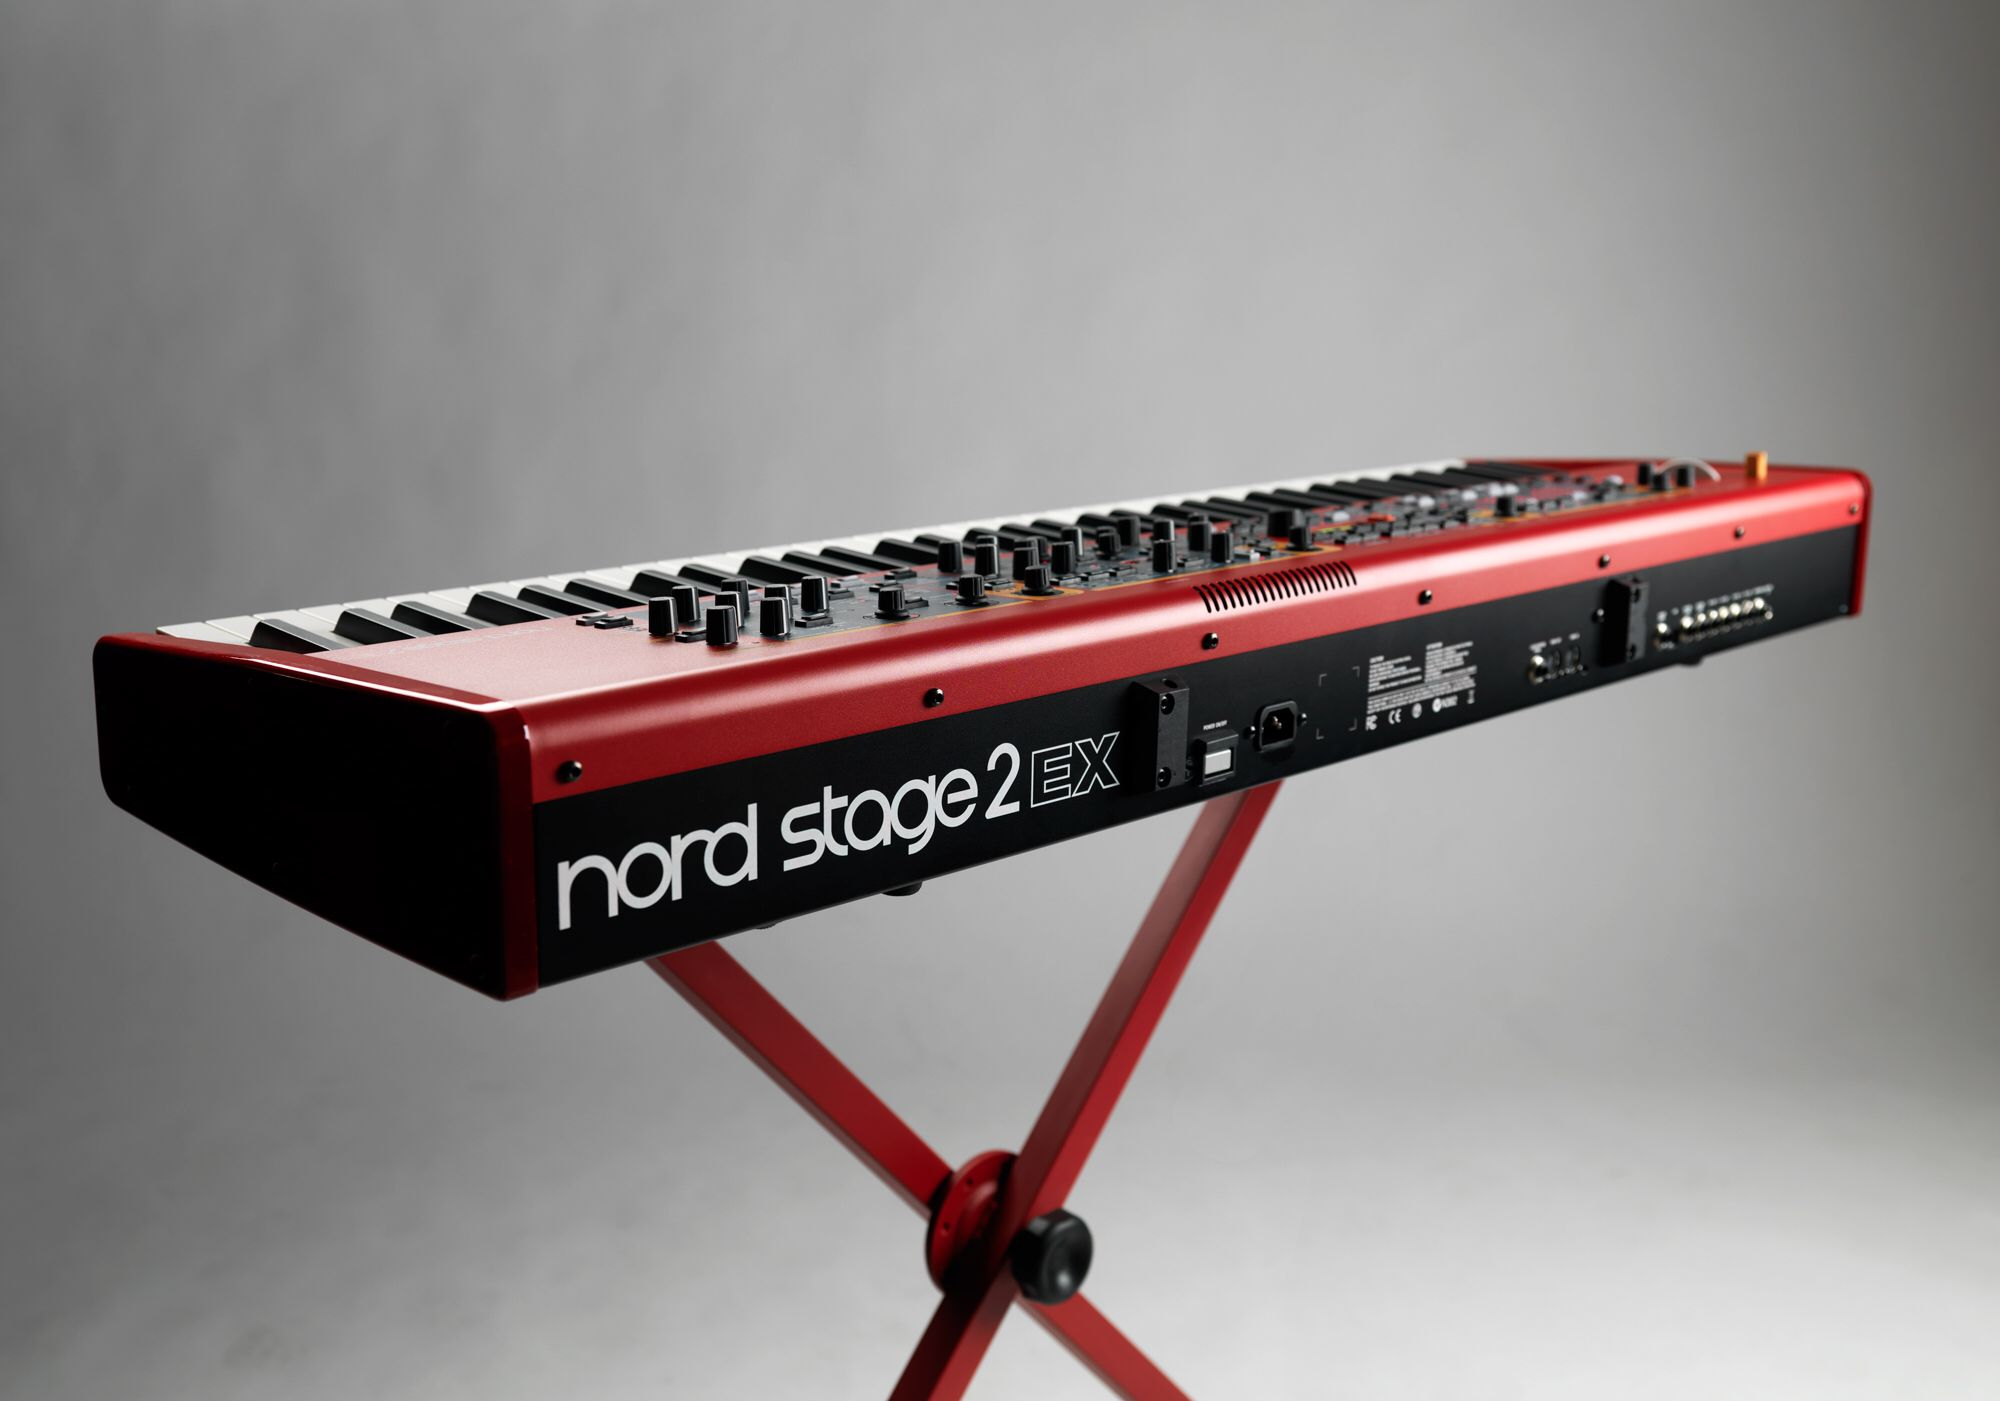 nord stage 2 music gear wish list in 2019 electronic music instruments keyboard piano best. Black Bedroom Furniture Sets. Home Design Ideas